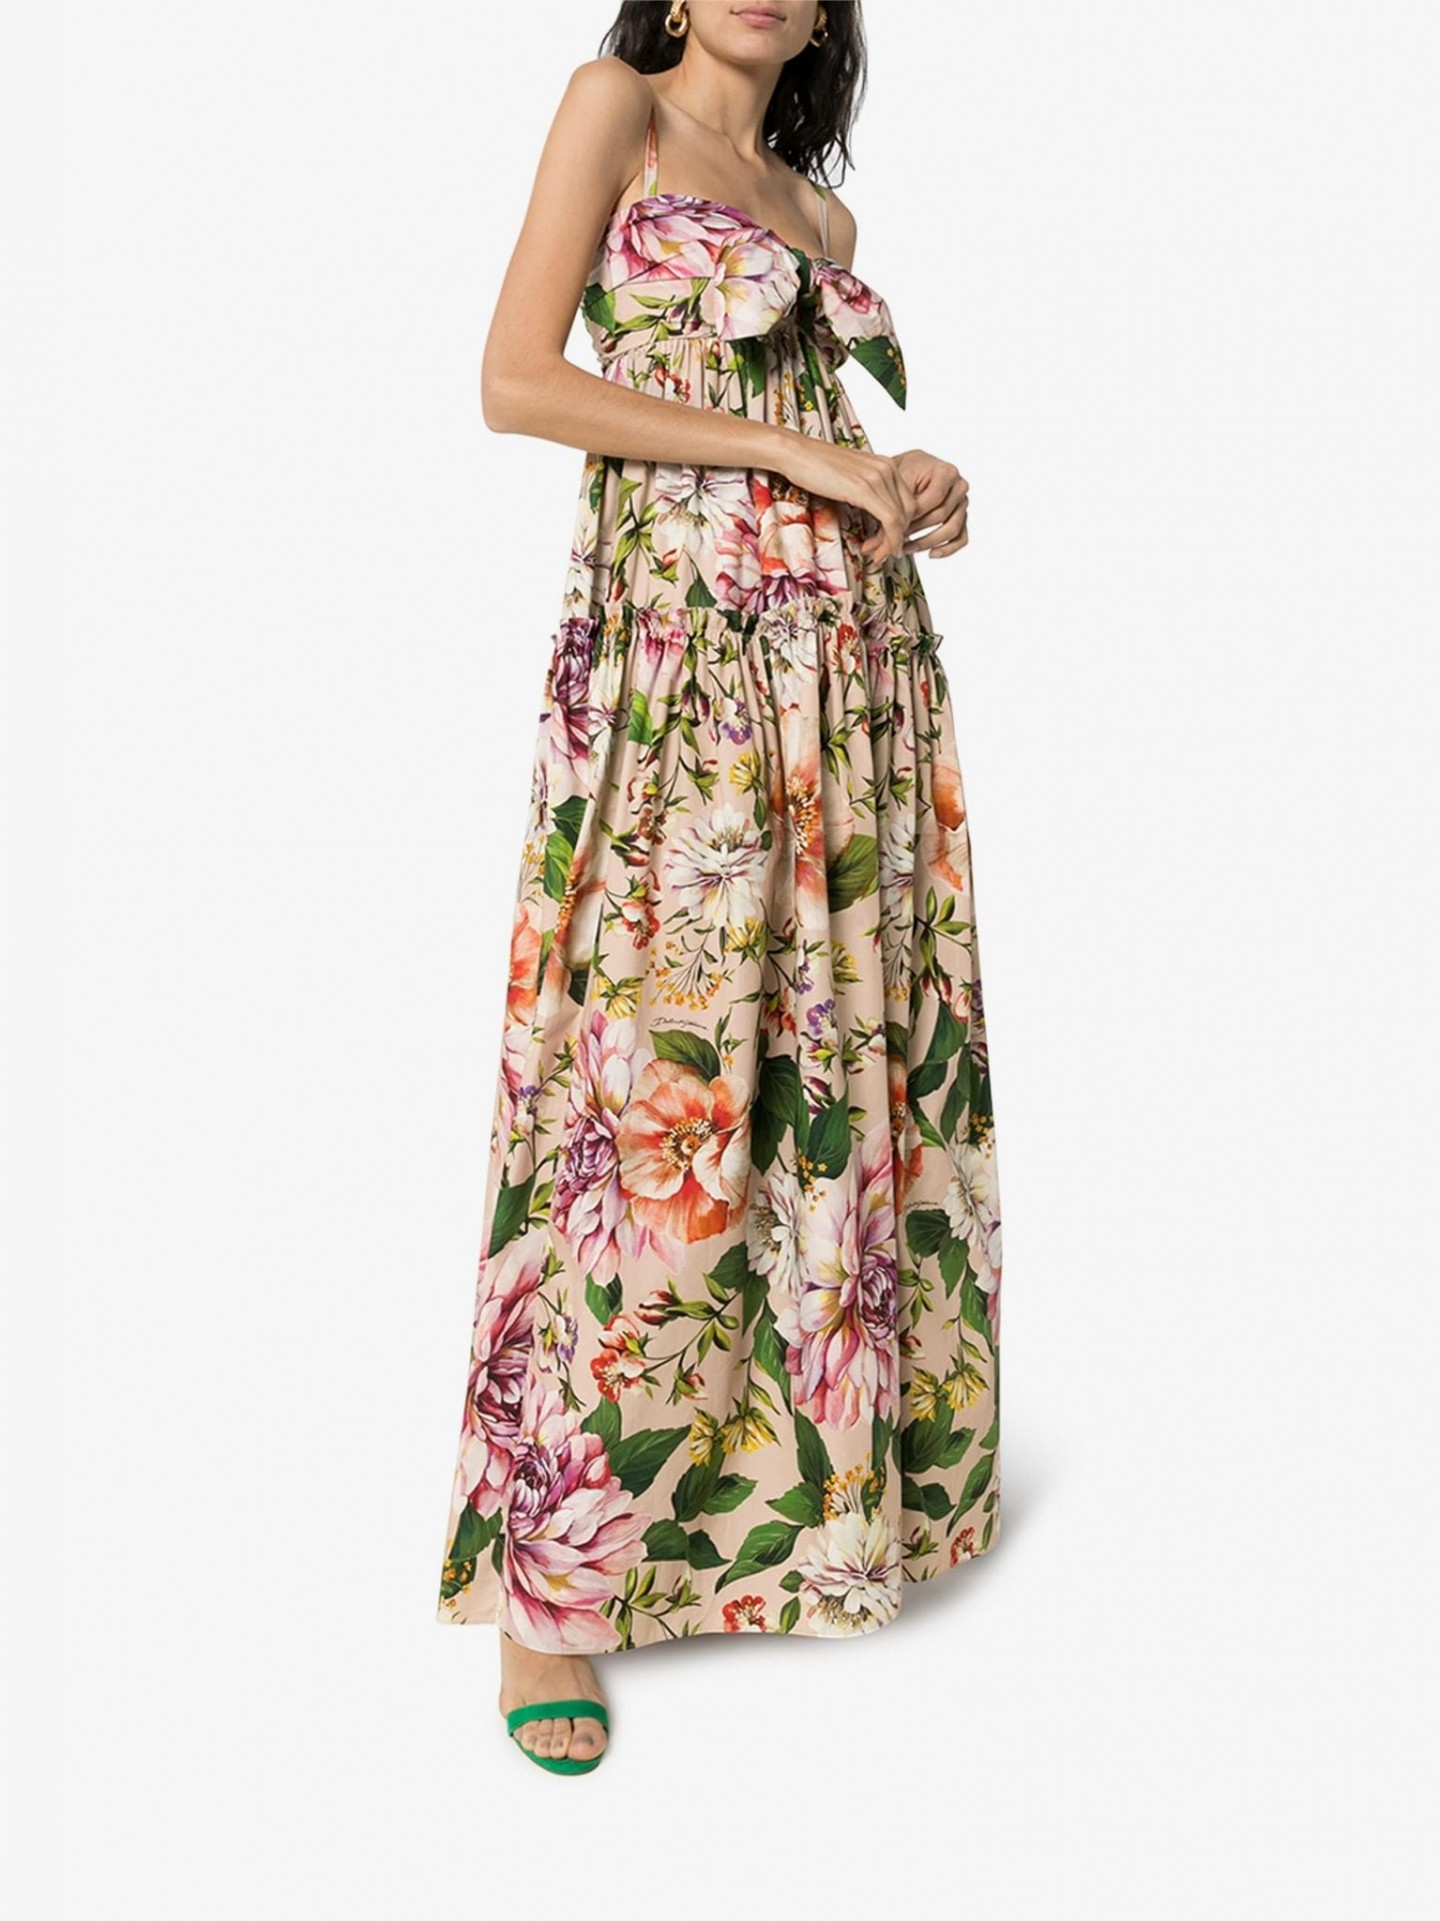 DOLCE & GABBANA Tie Front Floral Maxi Dress